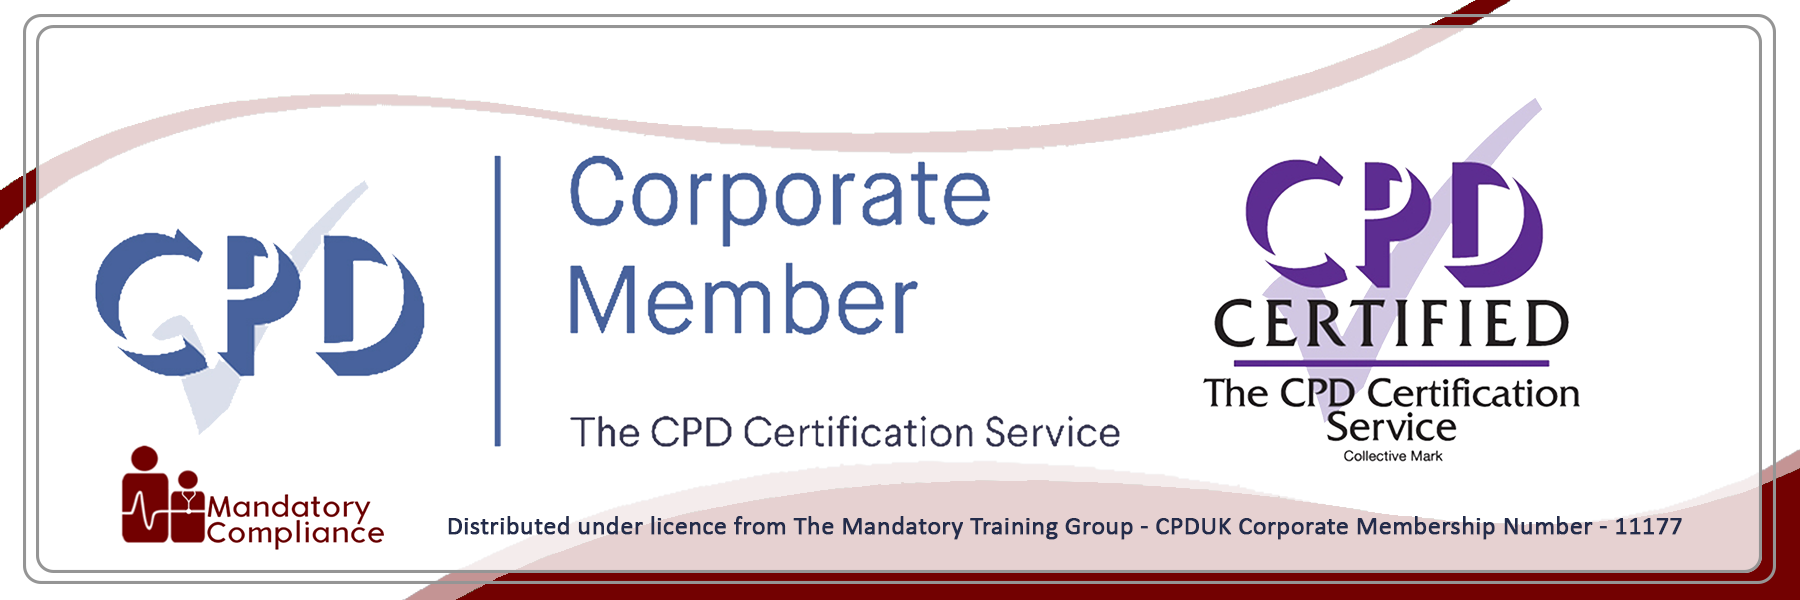 Staff Discipline and Grievance Measures - Online Training Course - CPD Accredited - Mandatory Compliance UK -